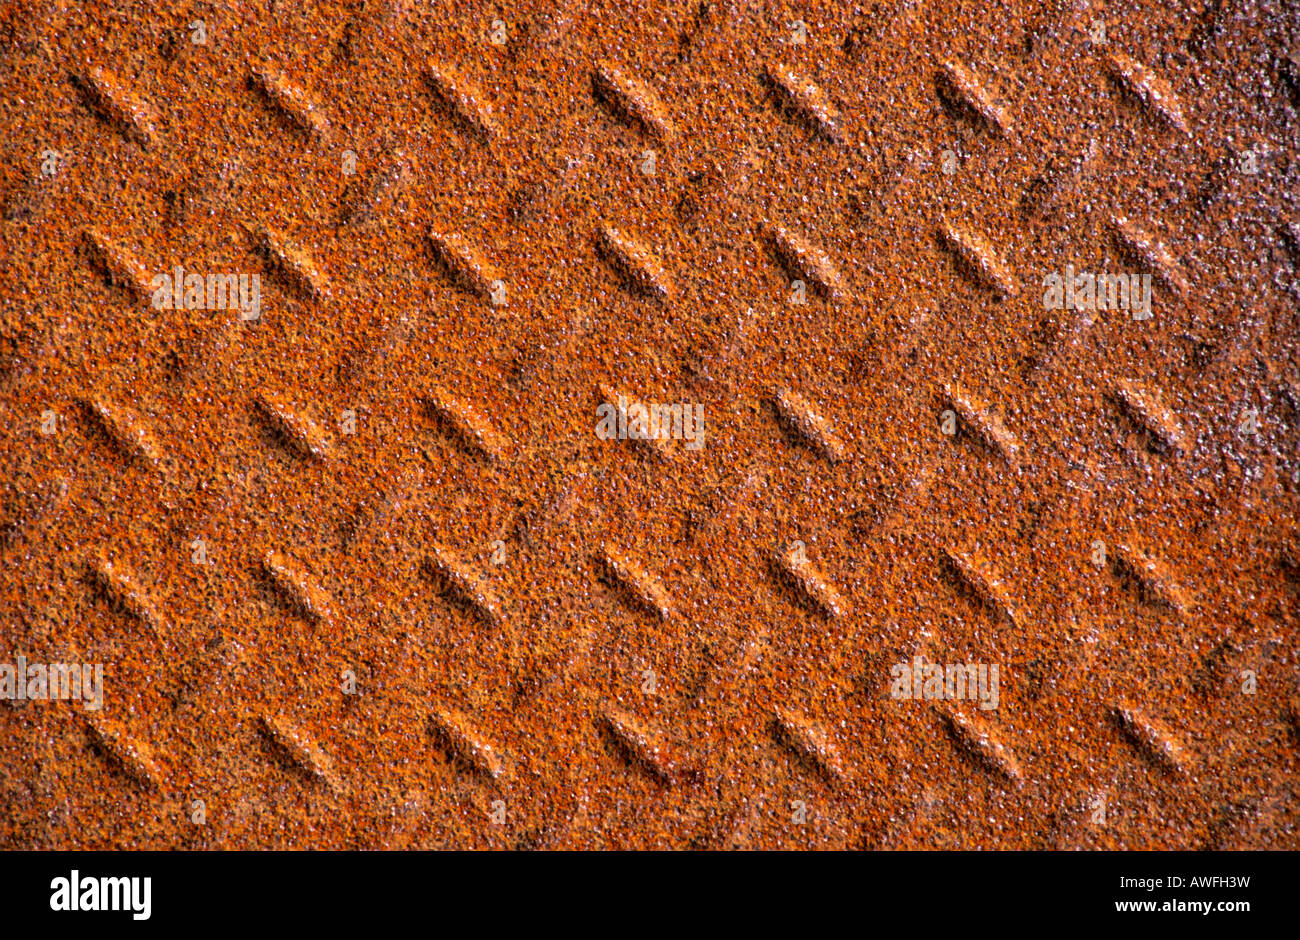 Rust-coloured metal surface Stock Photo